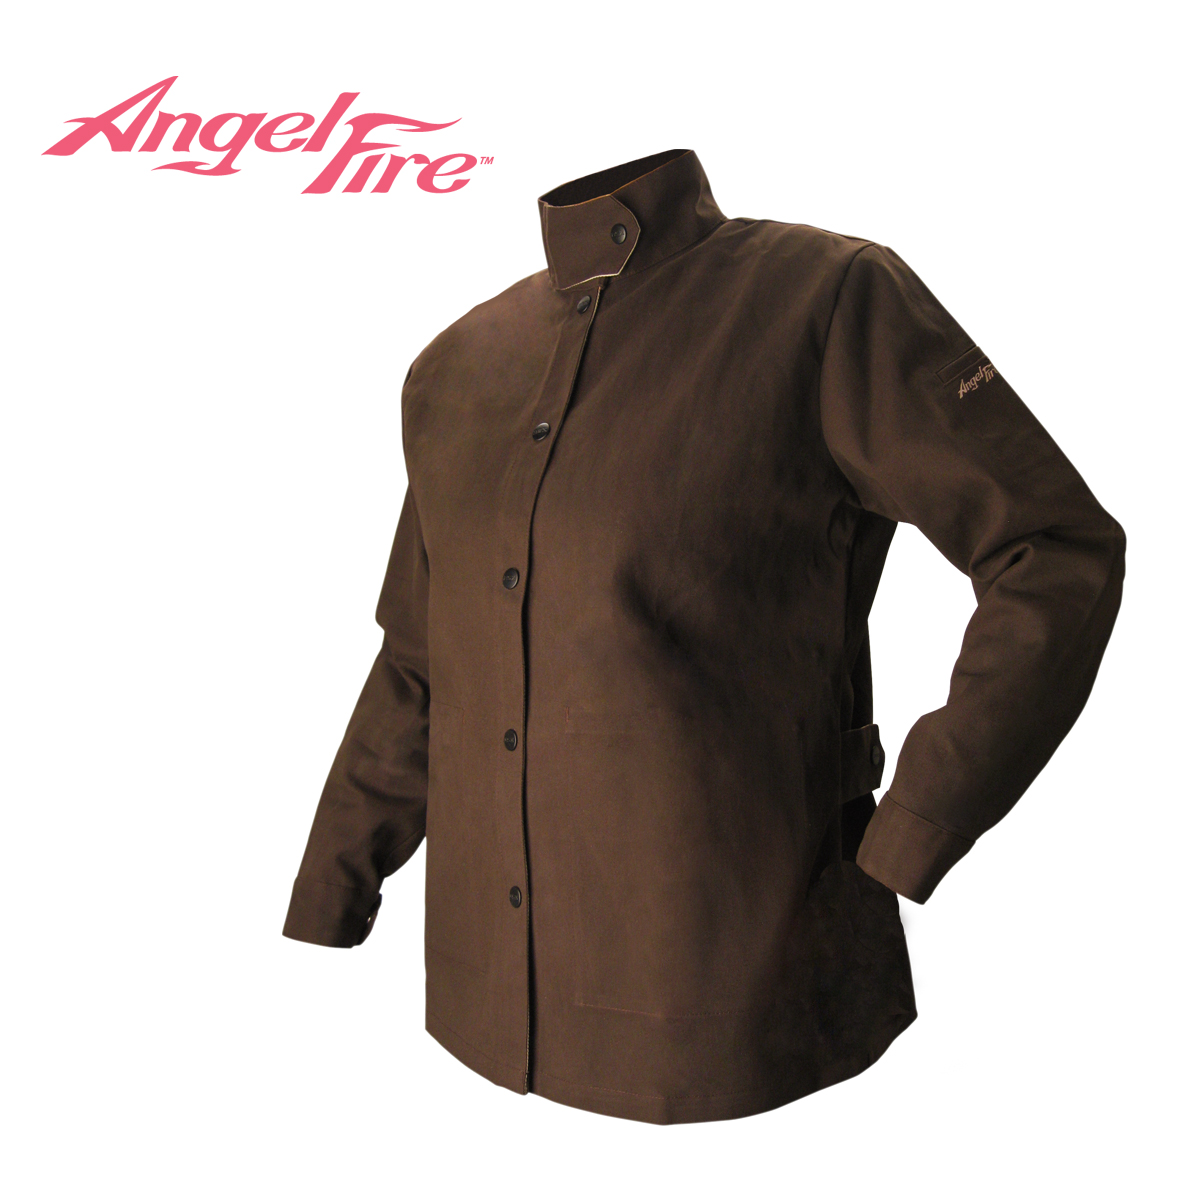 Size Medium Revco BSX AngelFire Womens Flame-Resistant Welding Jacket Chocolate